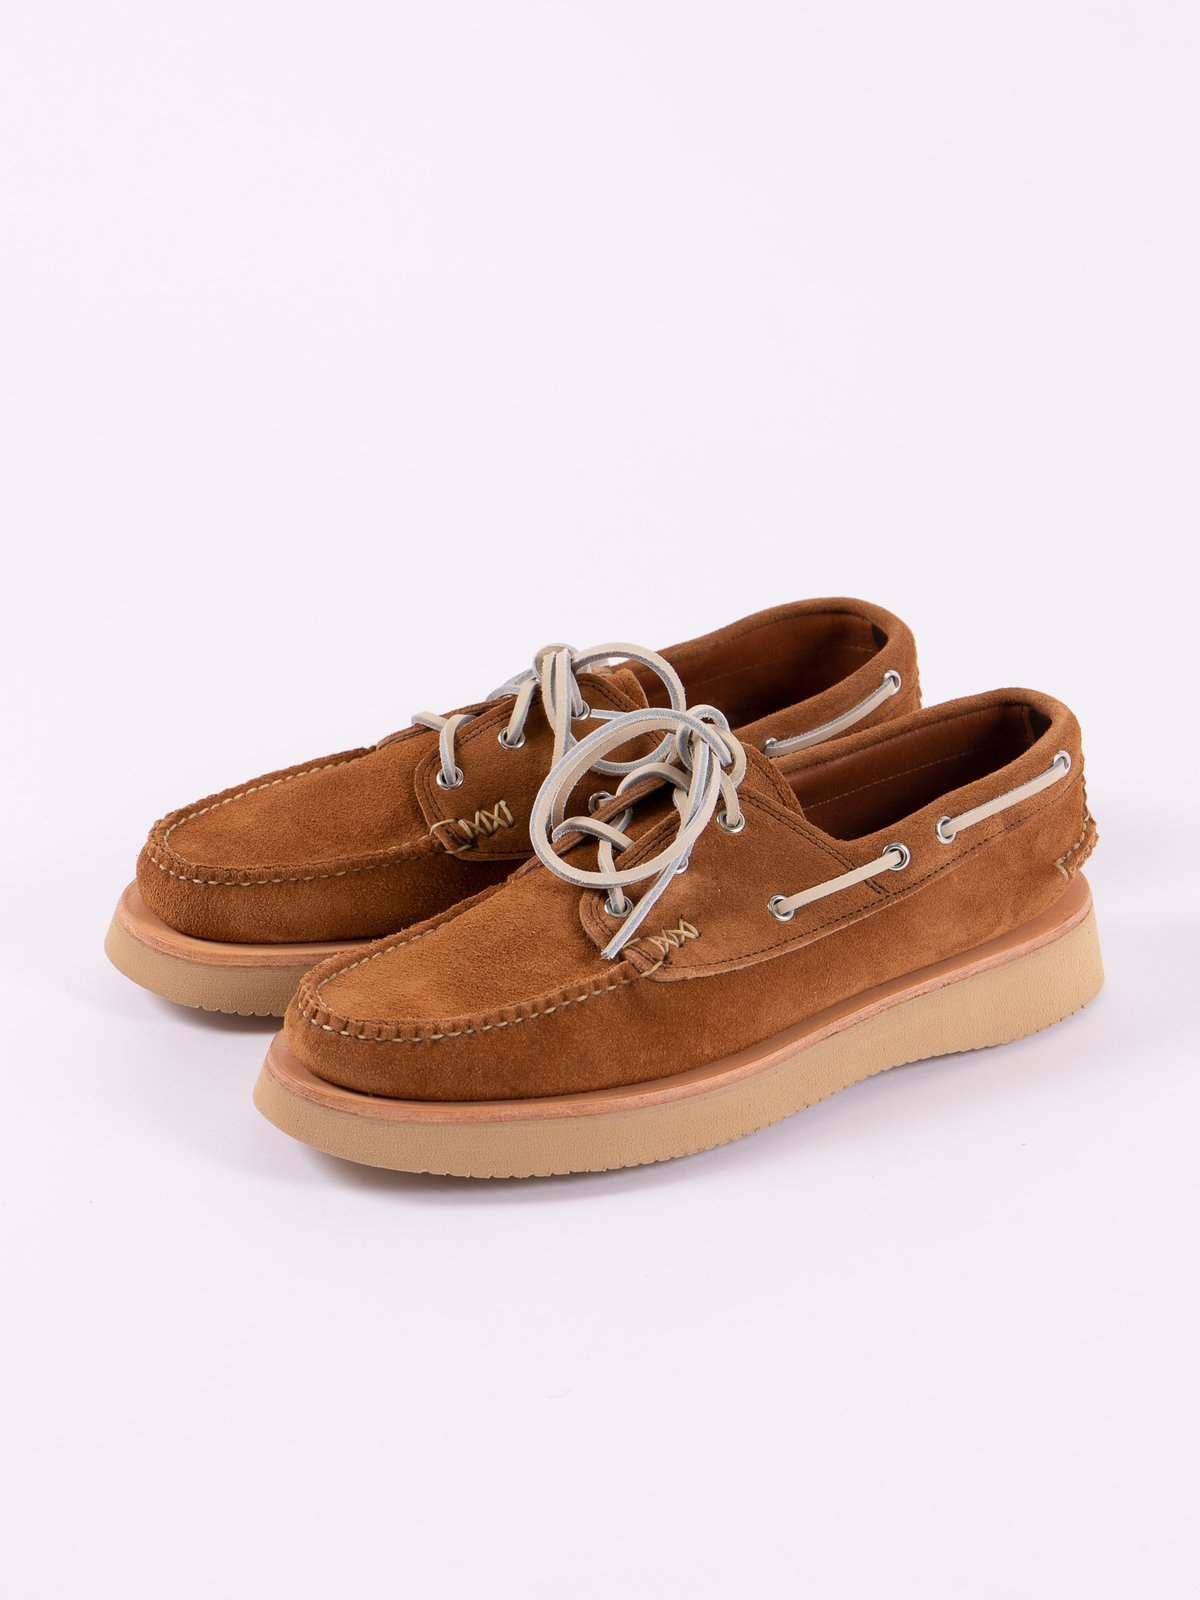 FO Golden Brown Boat Shoe Exclusive - Image 2